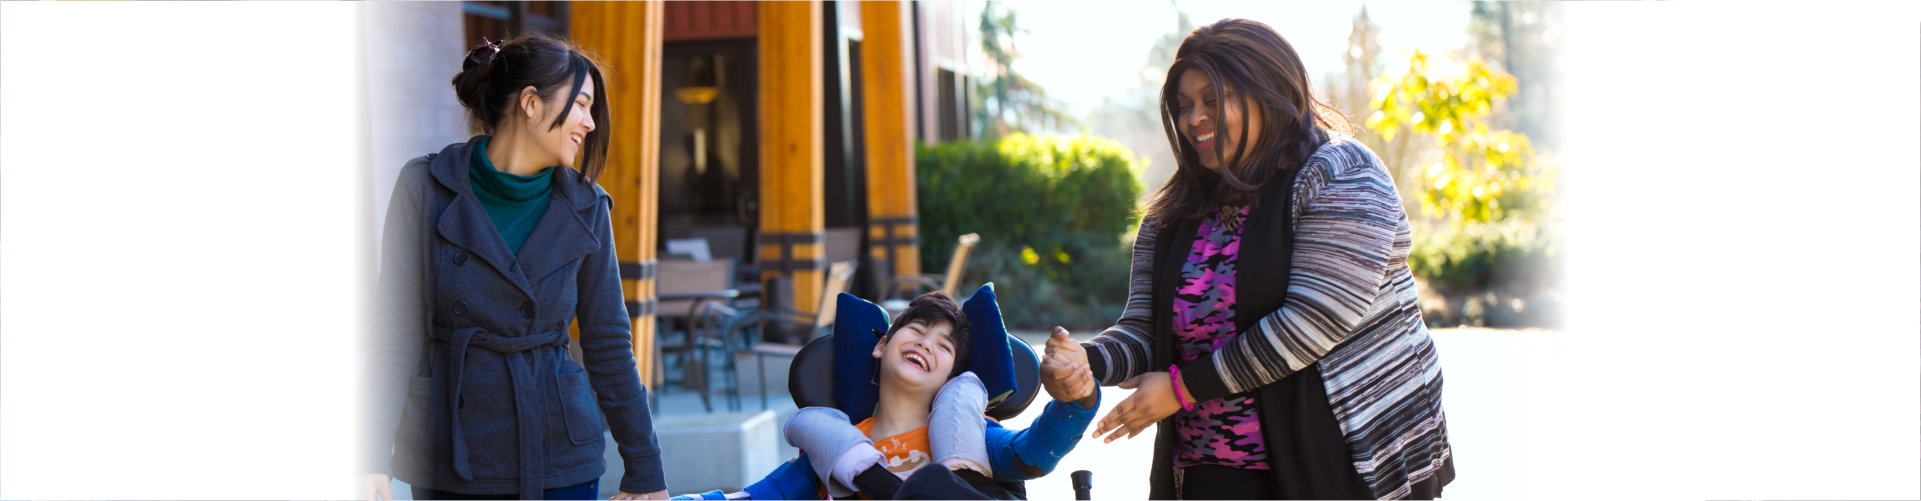 happy disabled kid with two women